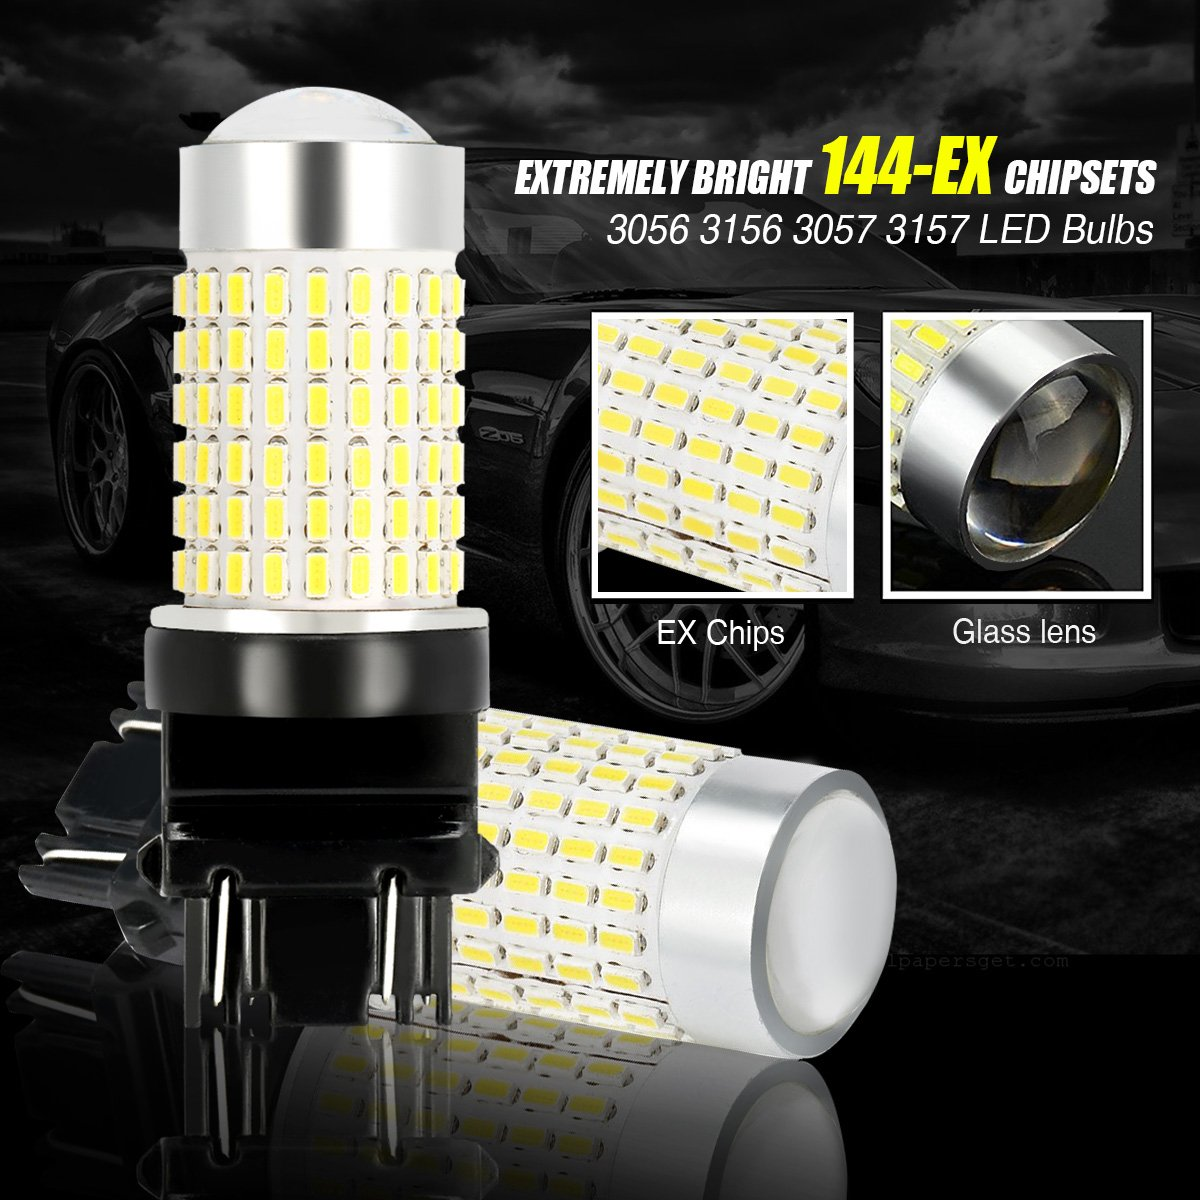 NTHREEAUTO Amber Front Turn Signals LED Lights 3-1//4 Compatible with Harley Electra Glide Road King Heritage Softail 5559074044